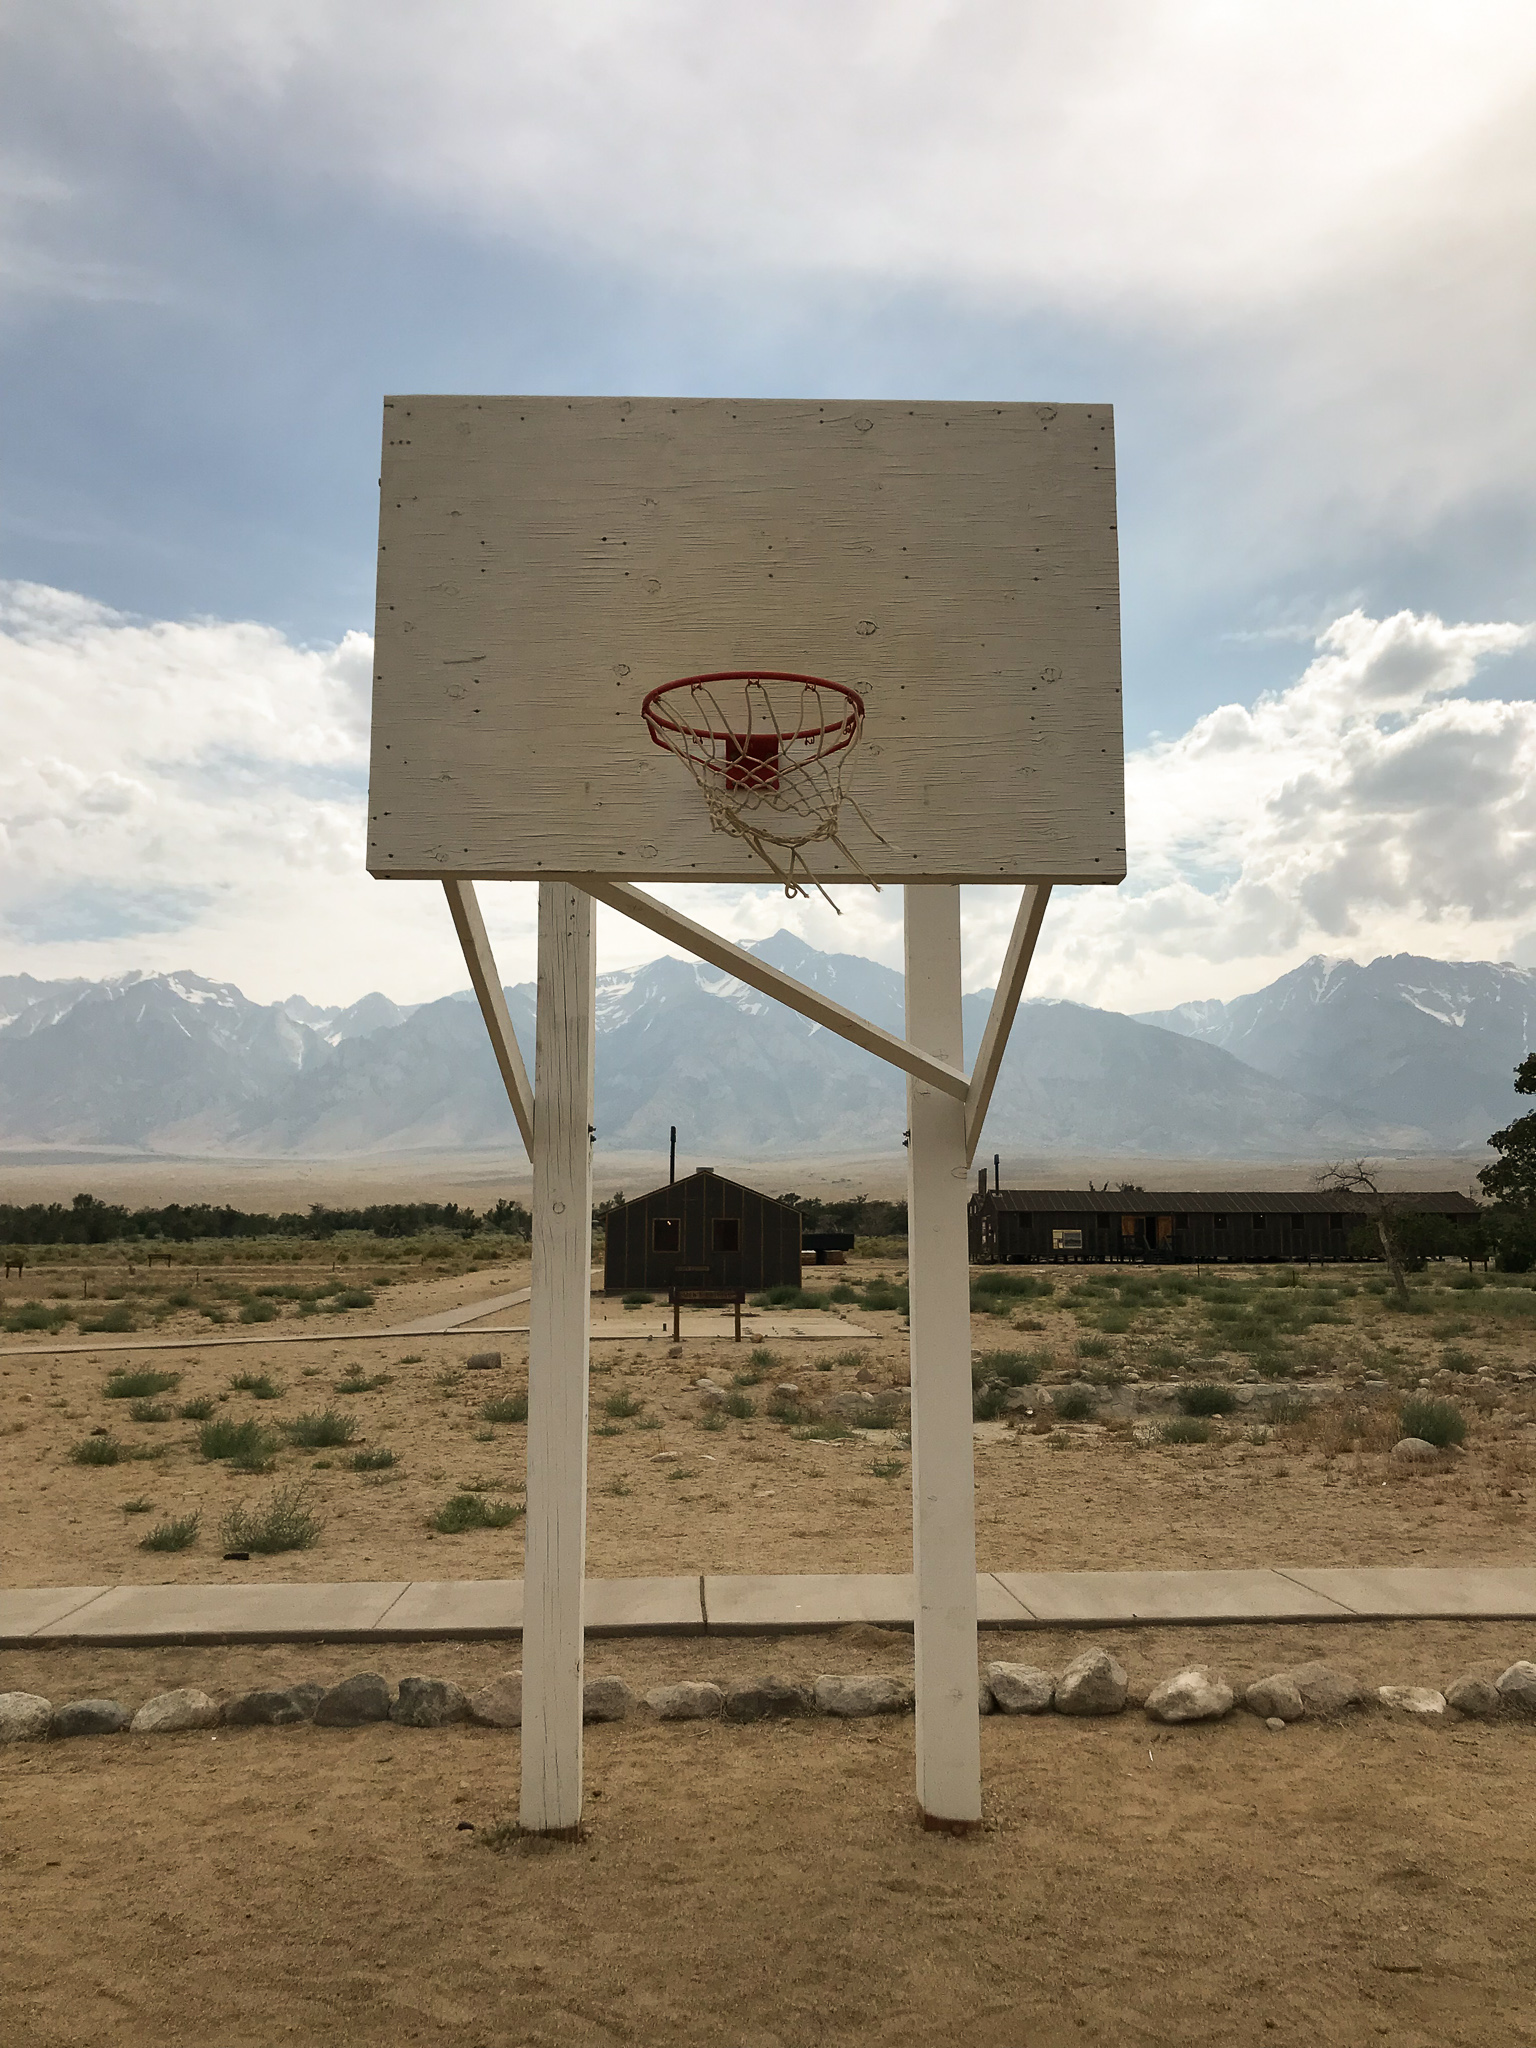 Dusty basketball courts in California